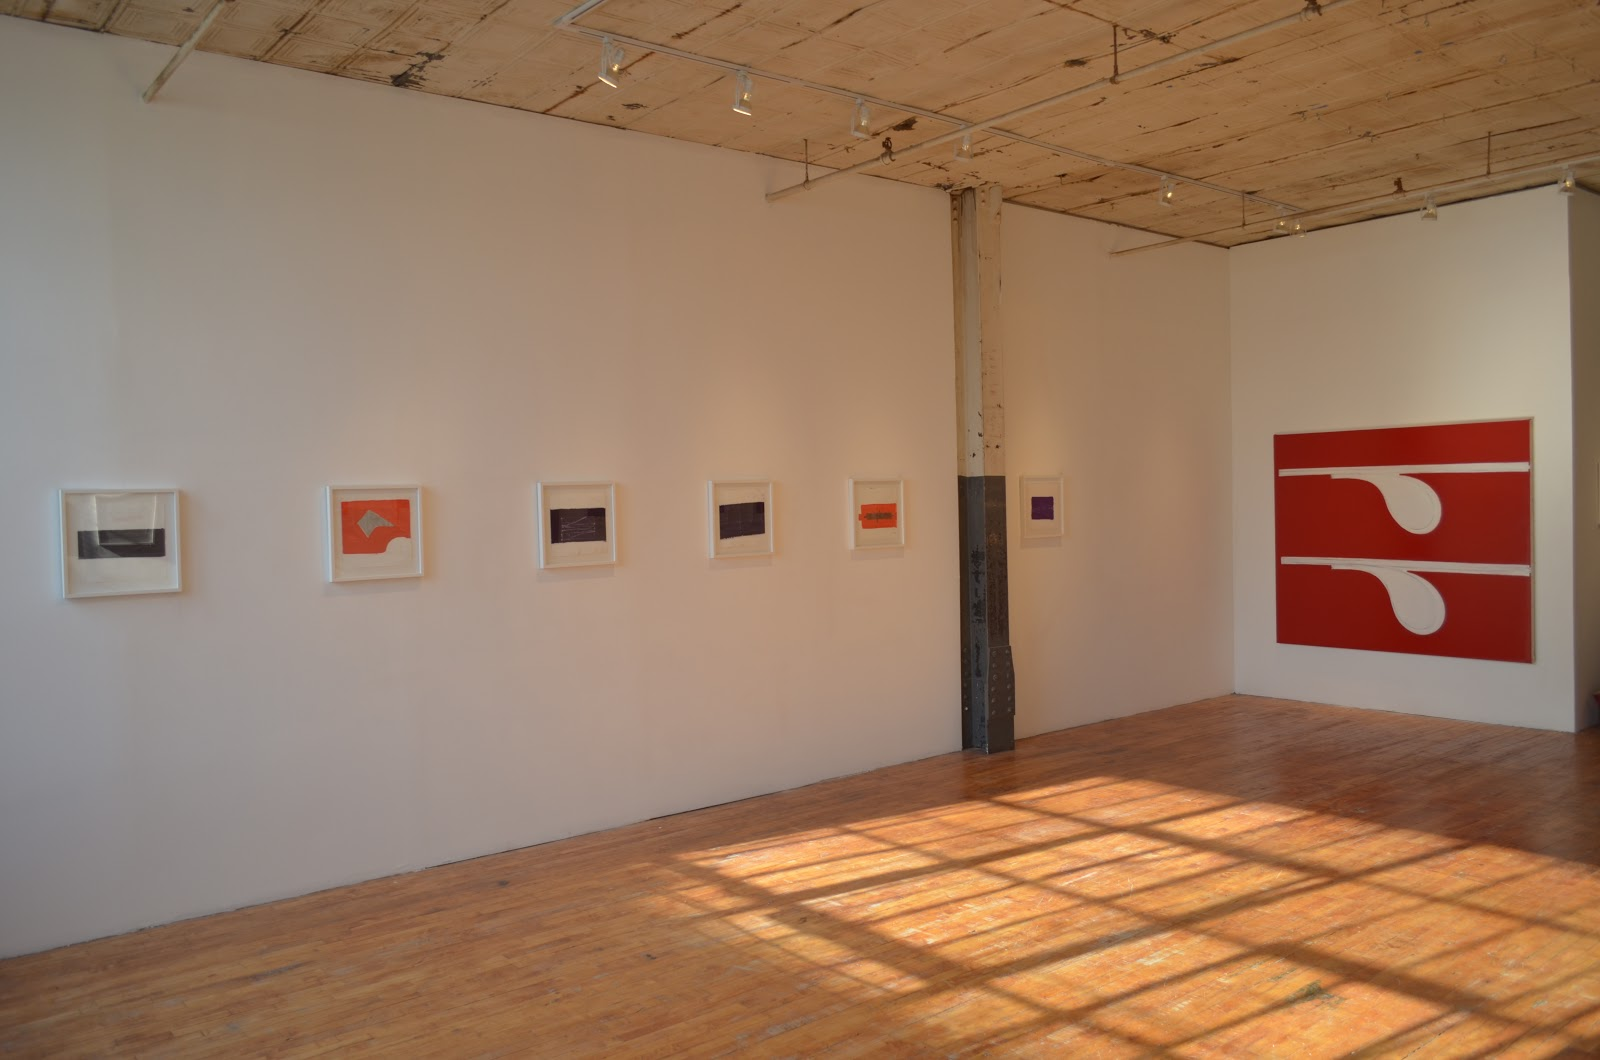 Studio 10, NY: 18 drawings and 1 painting, 2013